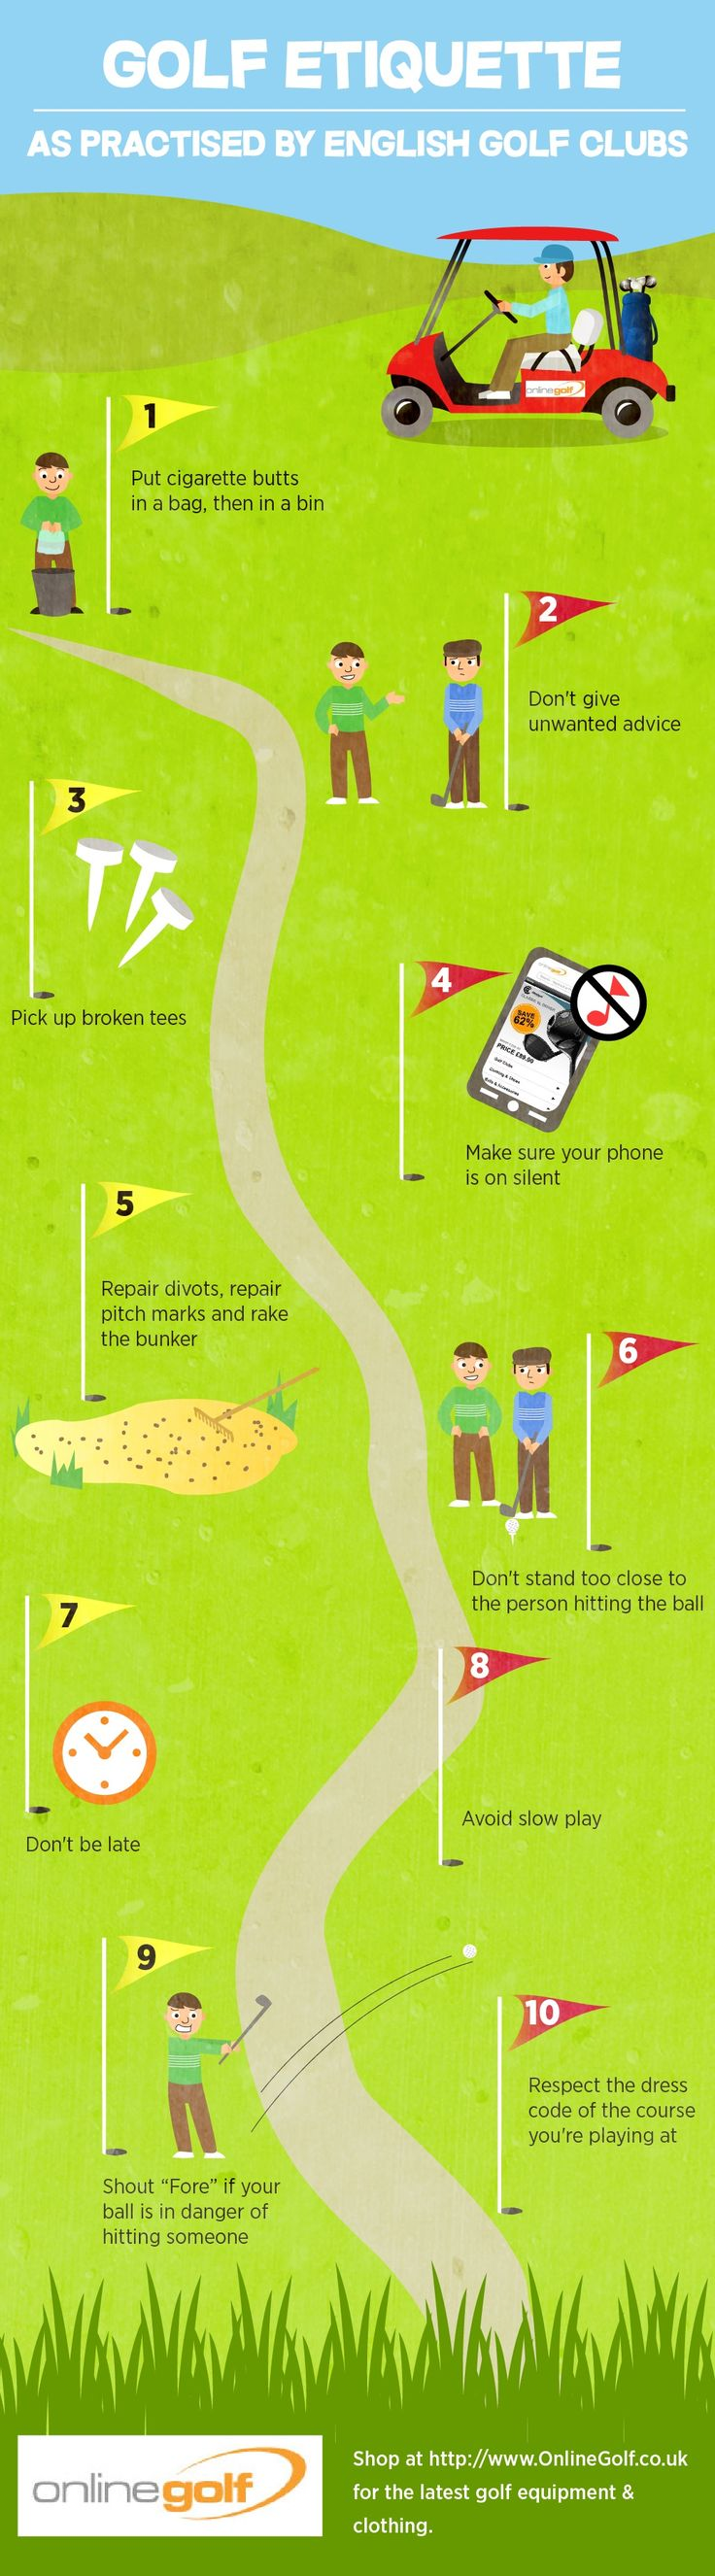 The Top 10 Tips On Good Golf Etiquette Infographic